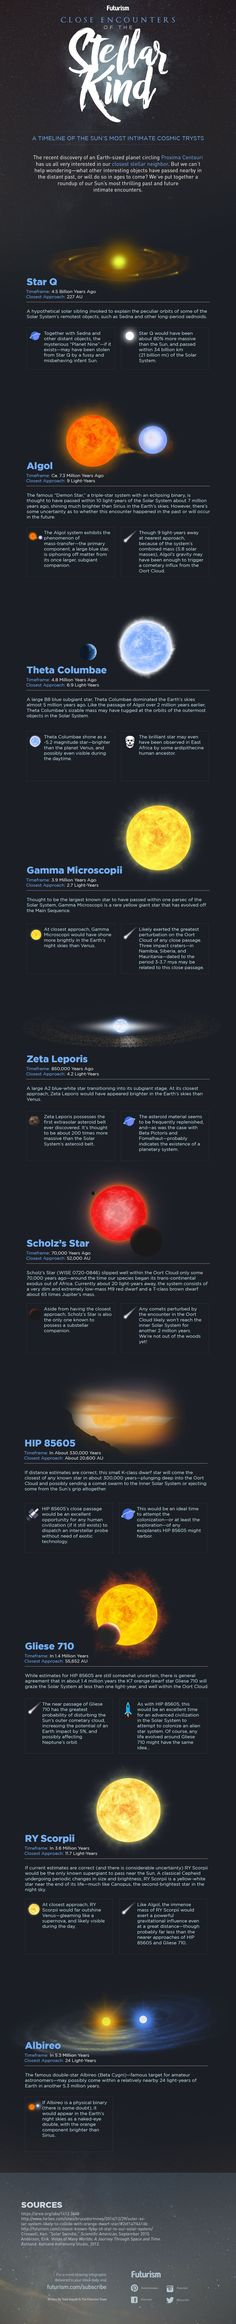 Close Encounters of the Stellar Kind [INFOGRAPHIC] — The solar neighborhood is a dynamic and ever-changing environment—and it wasn't always the placid, low-key one we know today. Some of its residents have included—or will include—eclipsing binaries, giant stars, and side-swiping interlopers.  Here's a look at our Sun's most thrilling past and future encounters.  — https://futurism.com/images/close-encounters-of-the-stellar-kind-infographic/